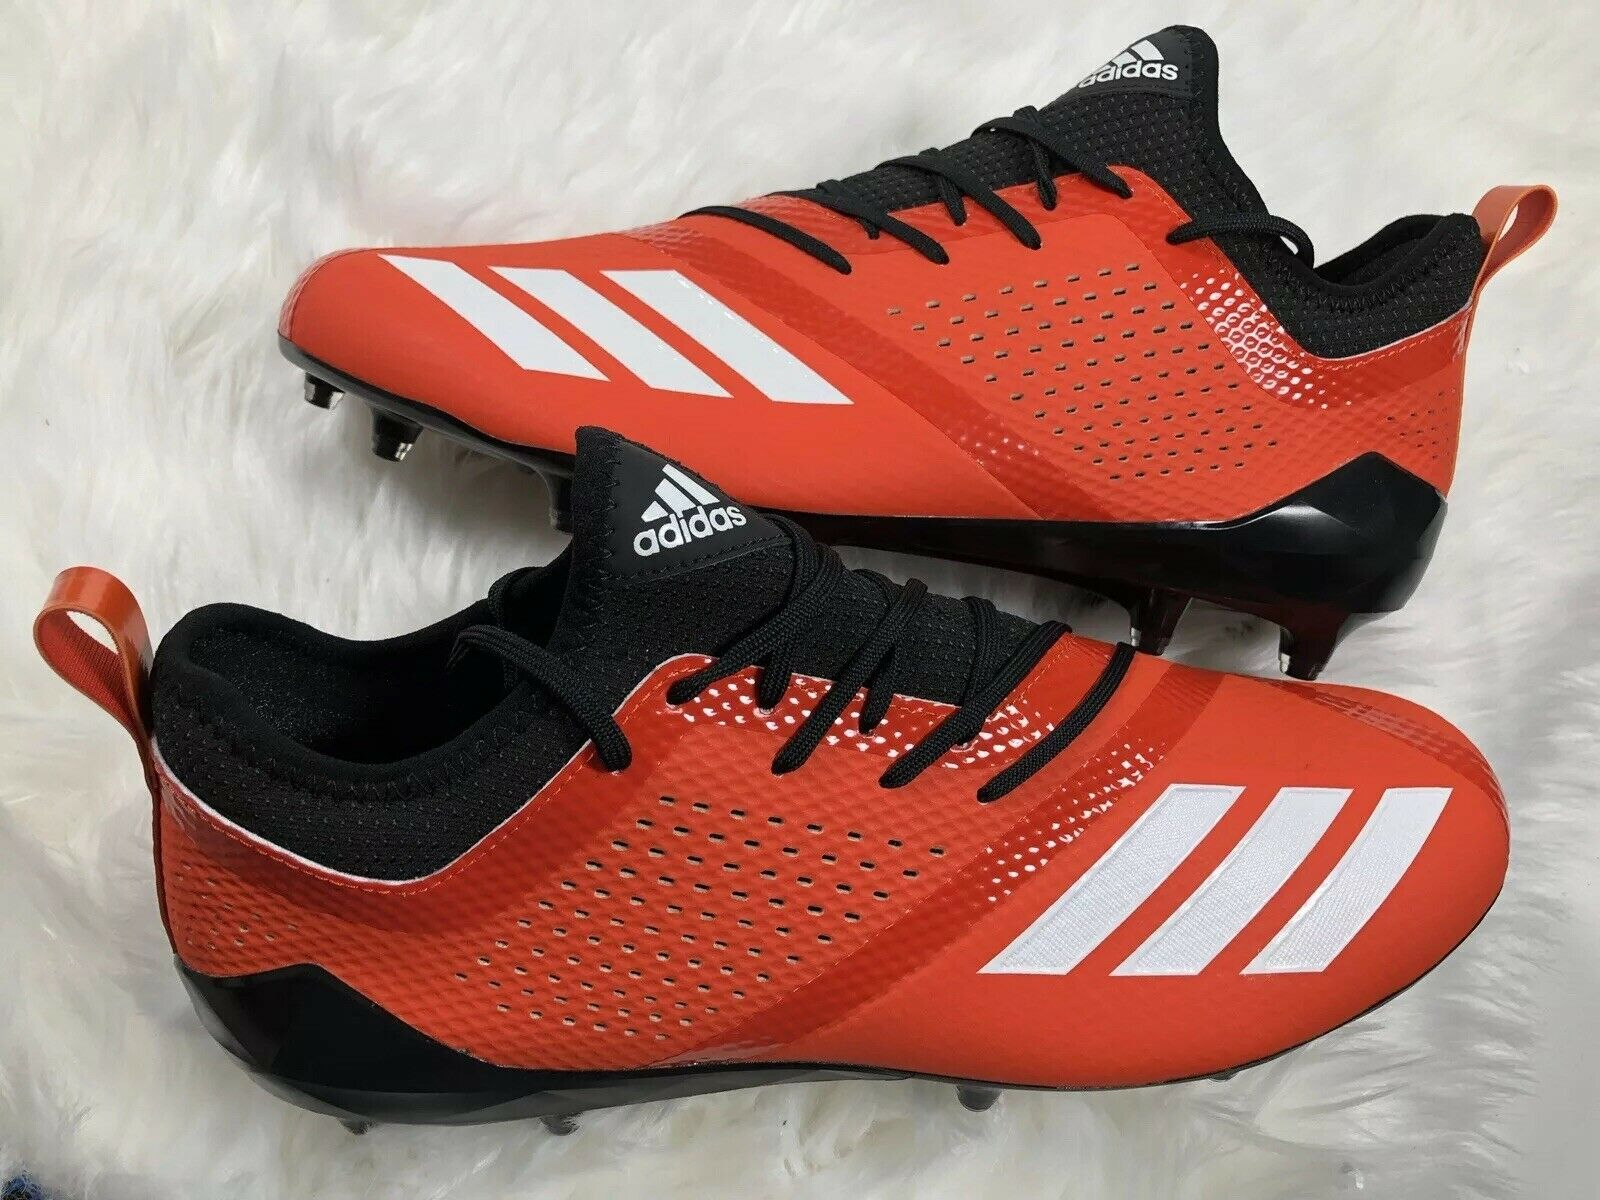 quality design 8e414 31ebf Adidas Adizero 5-Star 7.0 Low Men s orange Molded Football Cleats DA9541 Sz  13.5